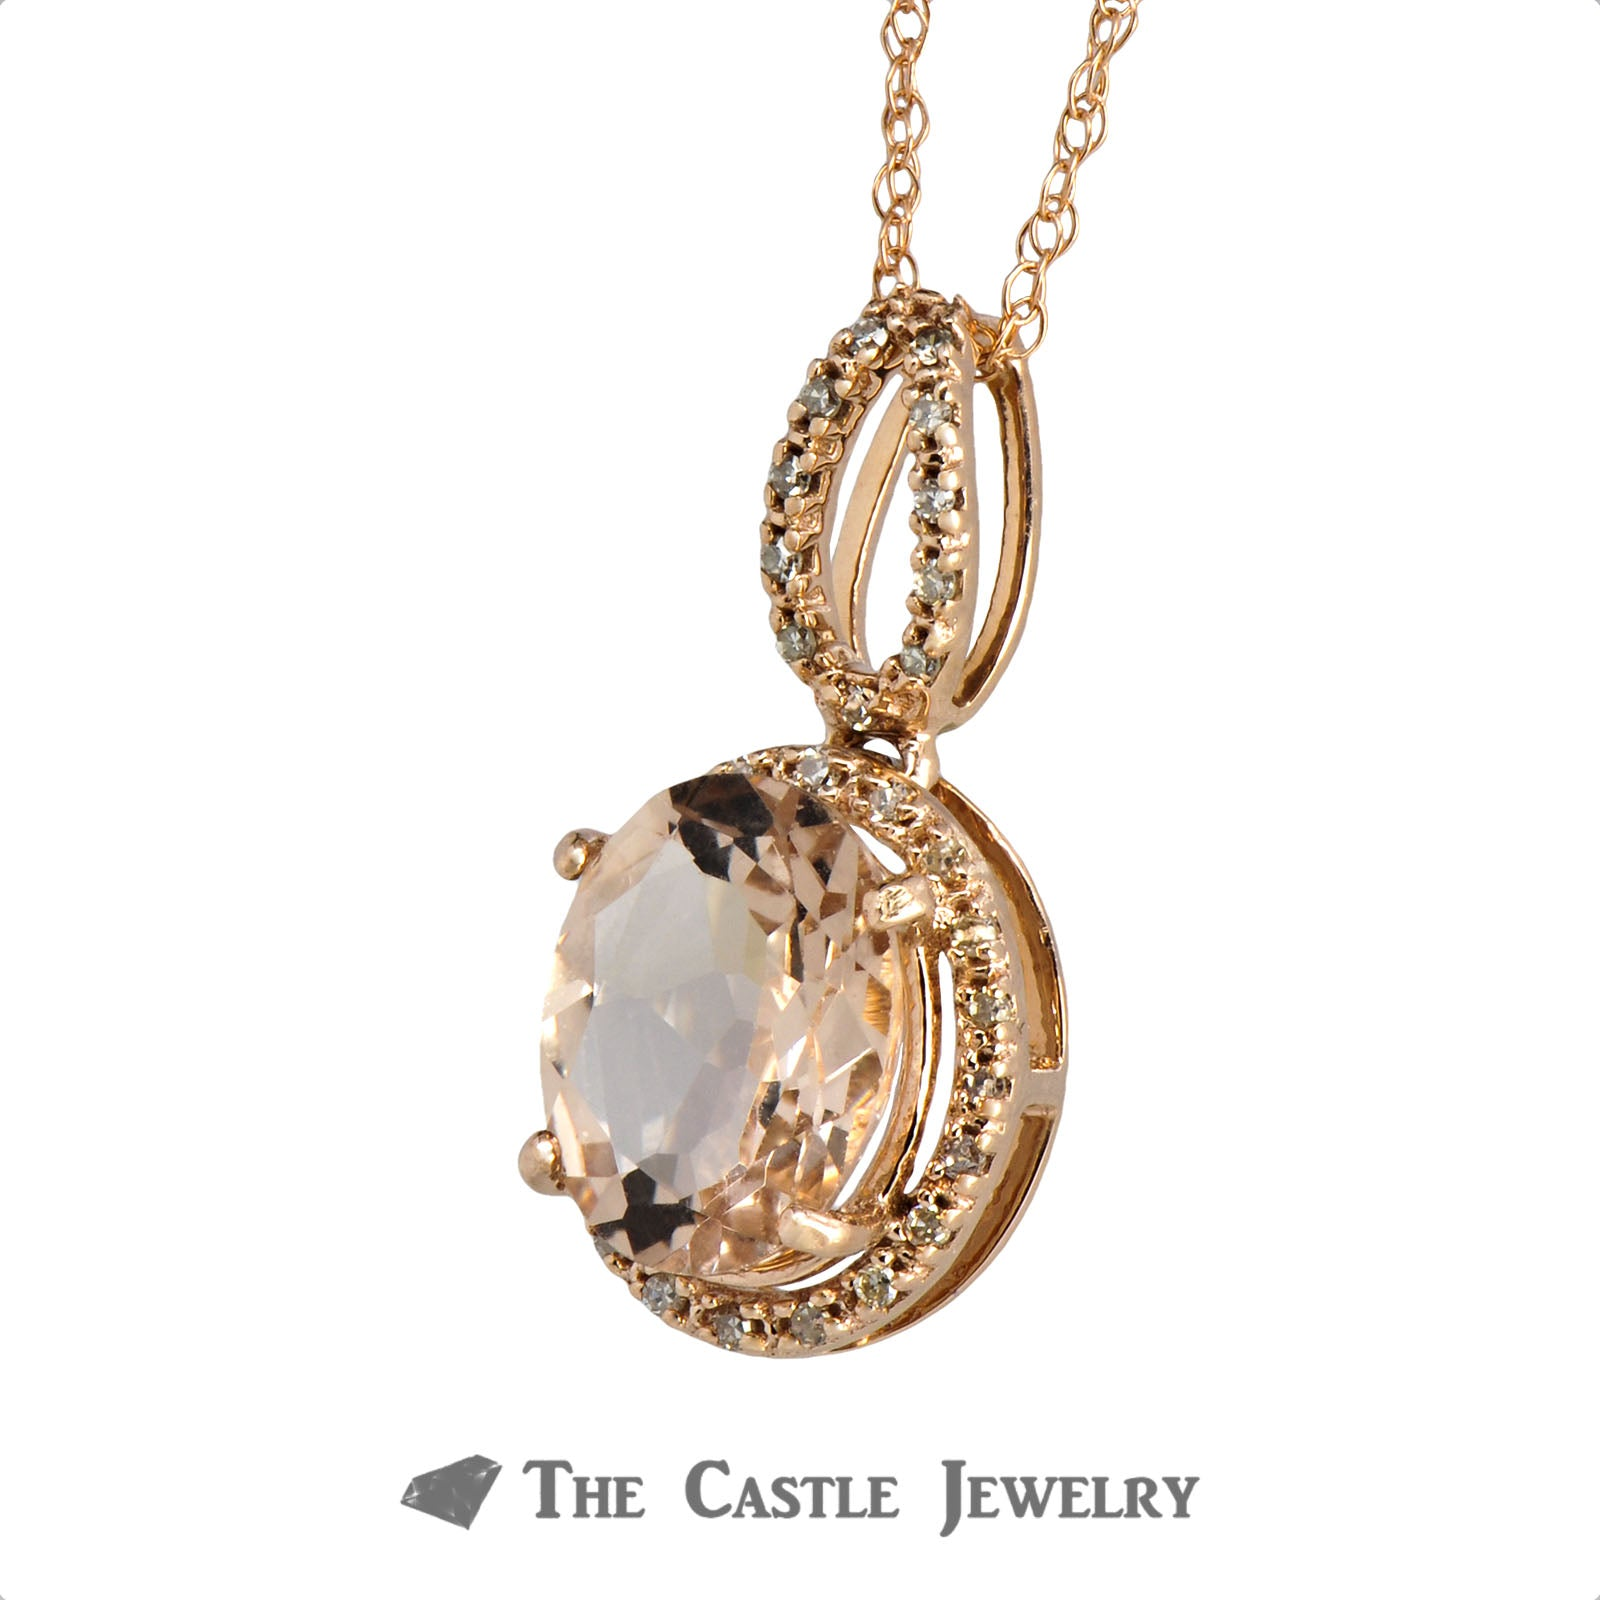 Oval Morganite Necklace with Diamond Halo & Bail in 14K Rose Gold-2